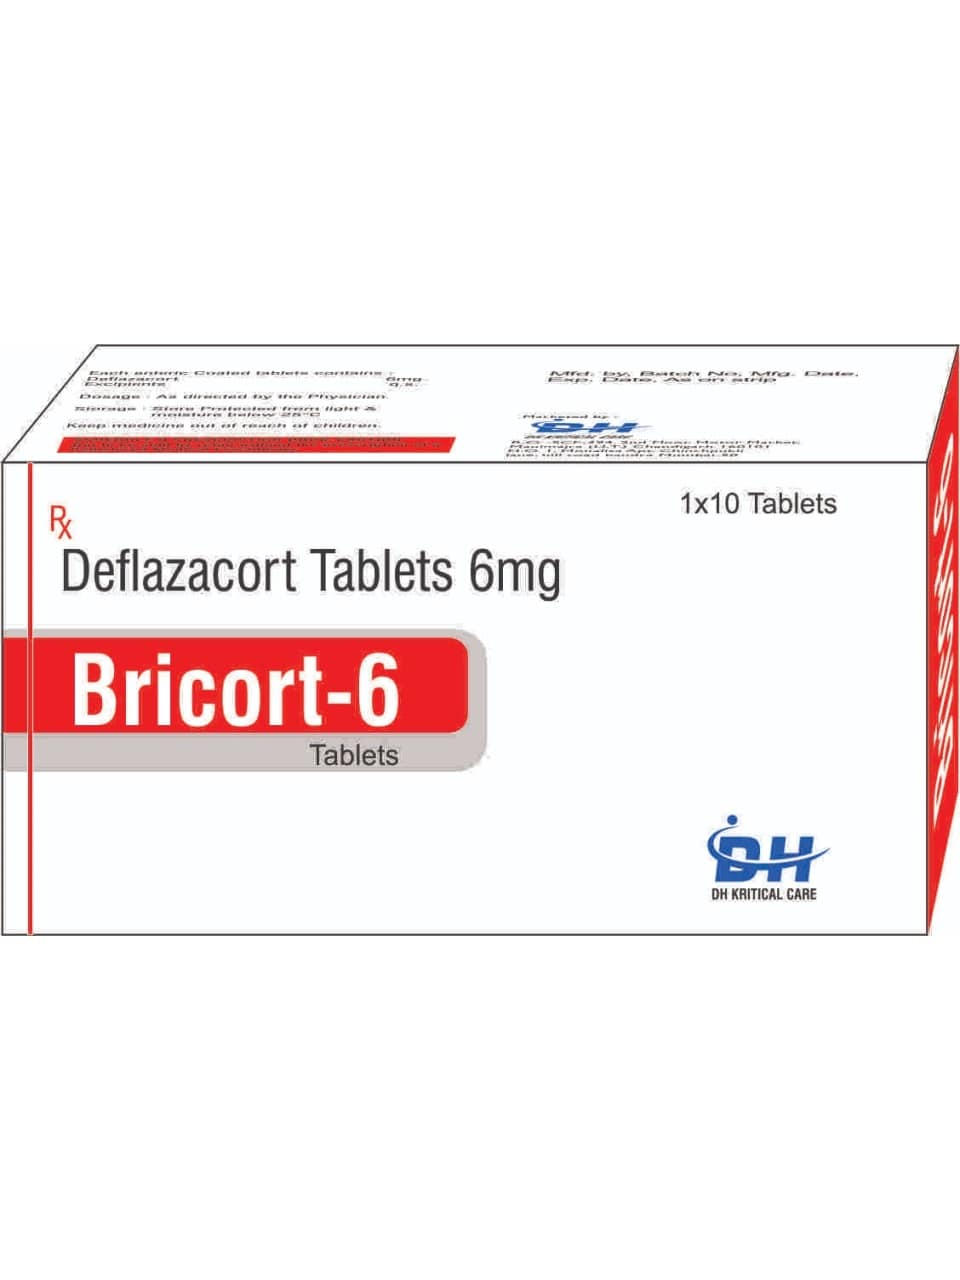 26-Bricort-6-Tablets-Deflazacort-Tablets-6mg-DH-Kritical-Care-Best-PCD-Pharma-Franchise-Company-Chandigarh